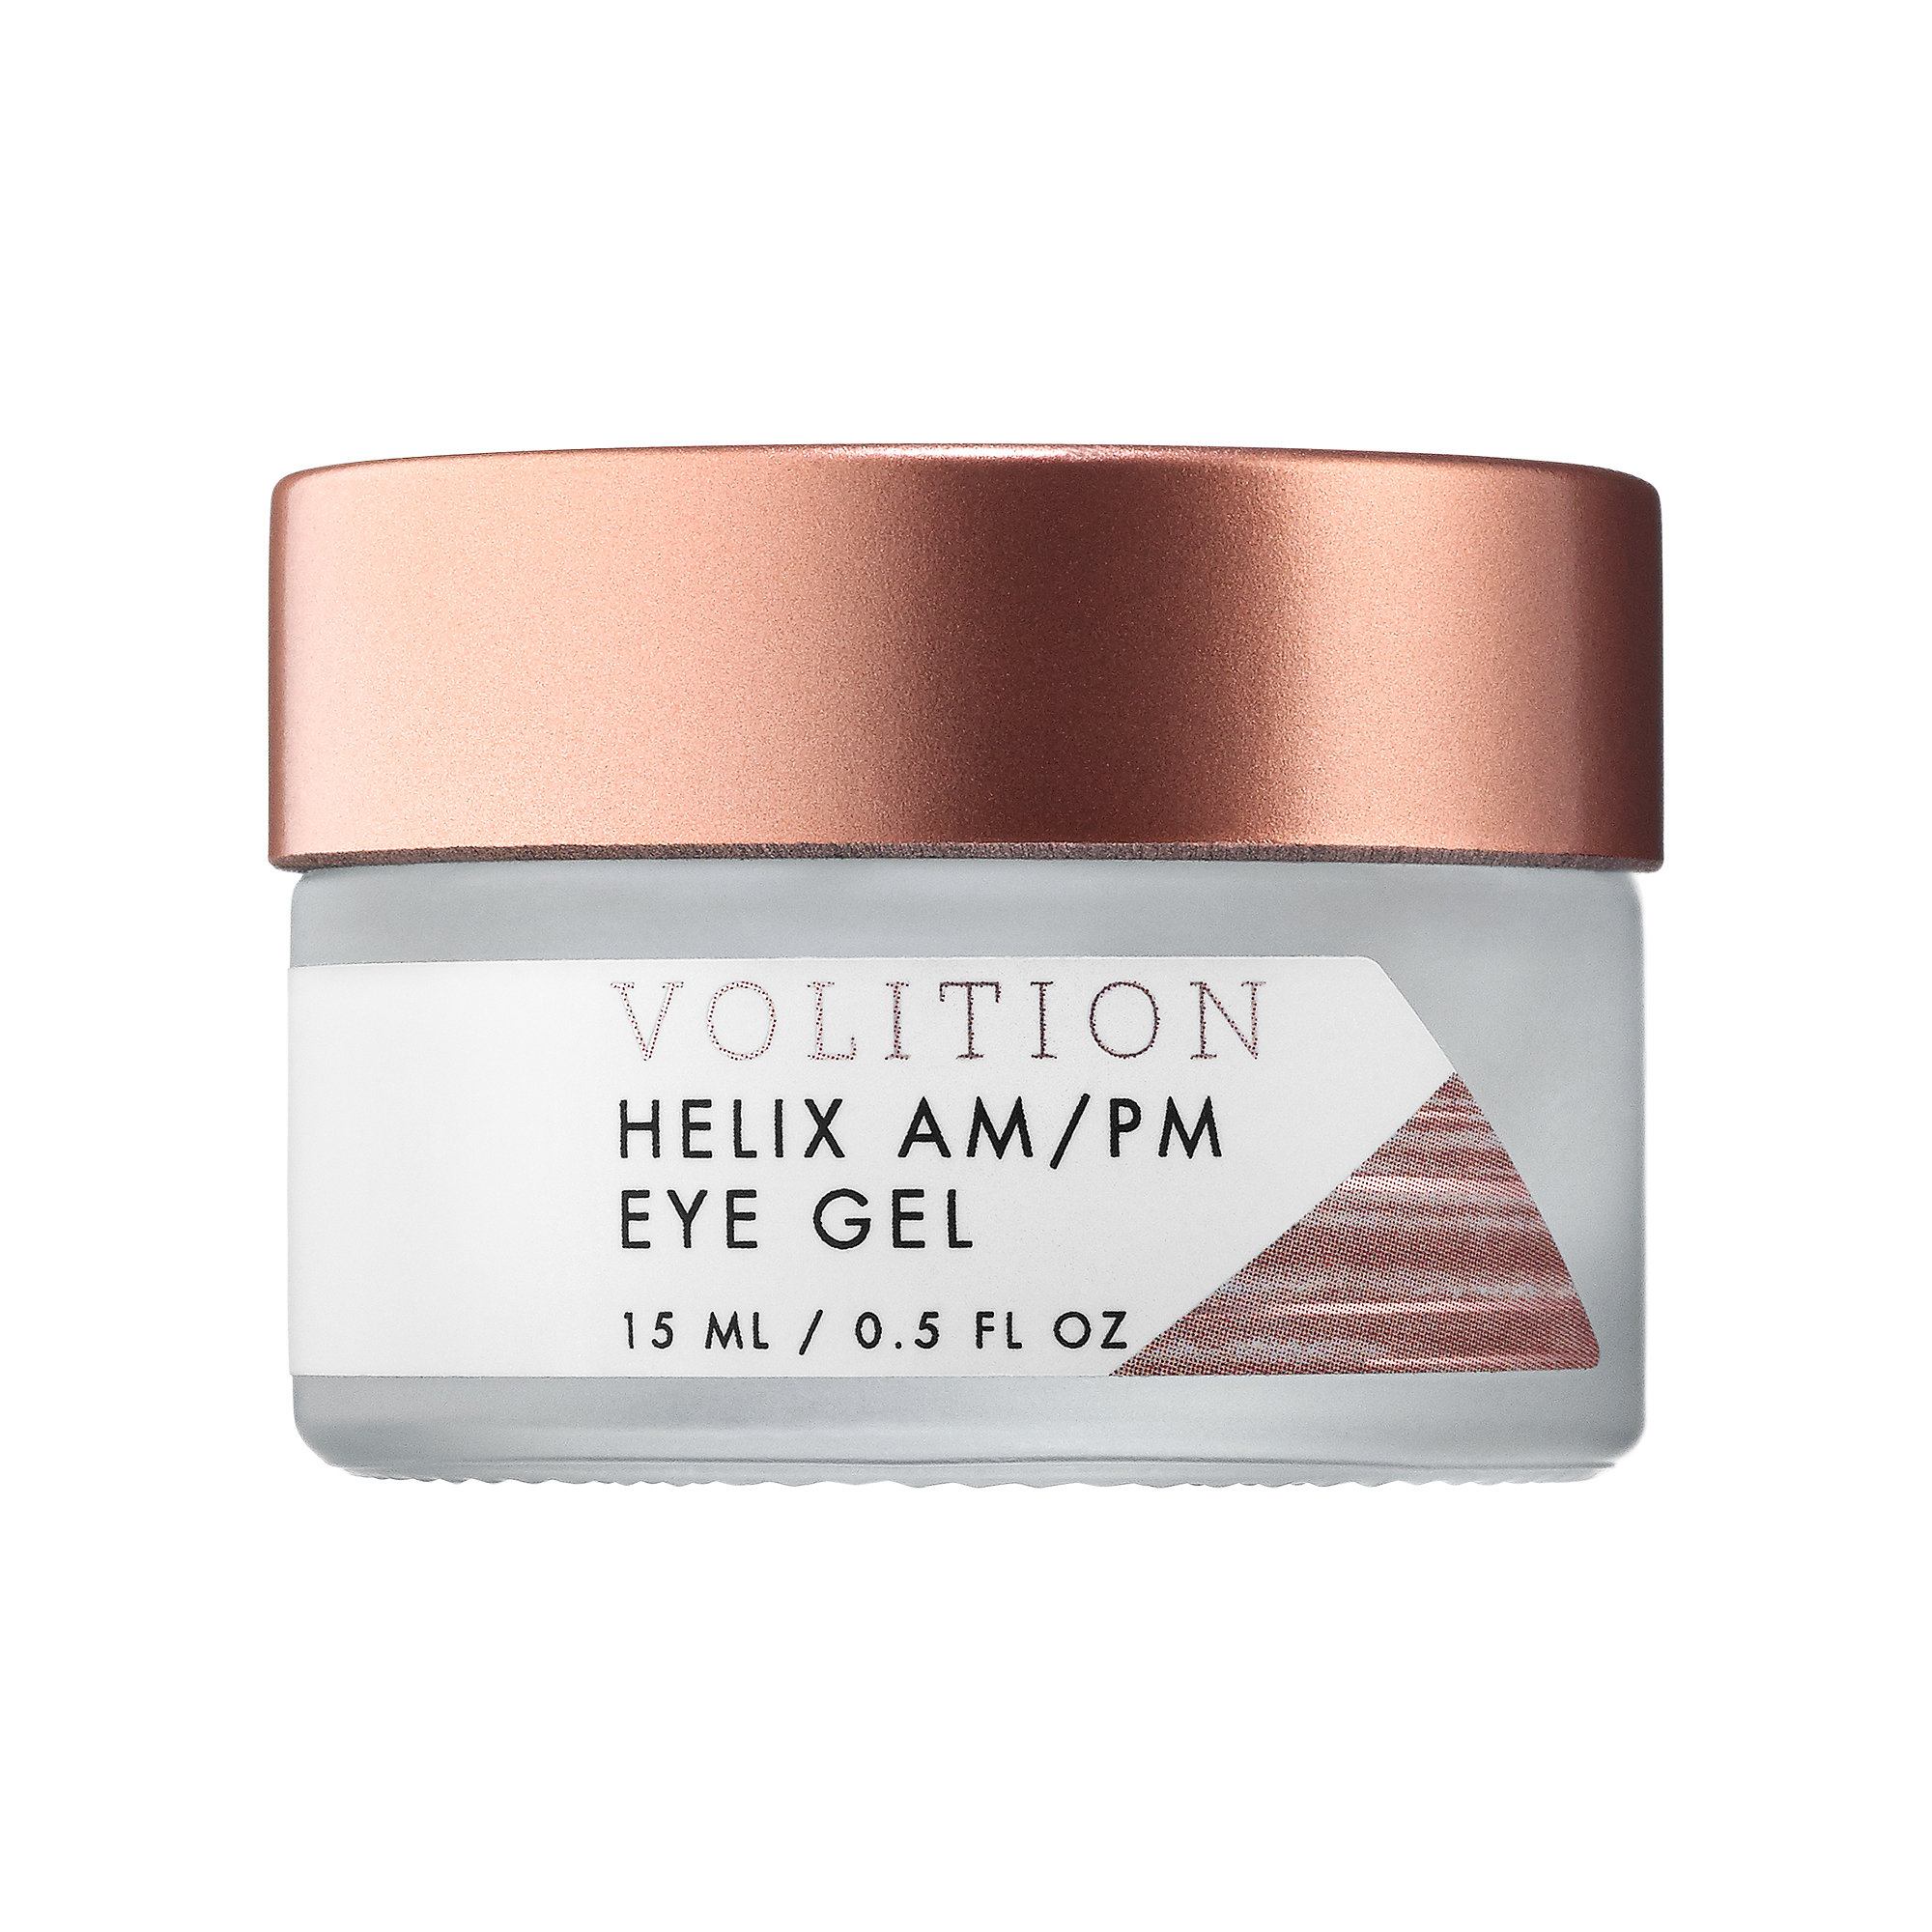 Volition Beauty Helix AM/PM Eye Gel - I am not loyal to any one eye cream.  I love trying new ones frequently and this one from Volition Beauty is my current.  It is a clear gel that smooths on nicely (tip: keep any eye cream in the fridge to keep it cool and help depuff!).  Makeup applies smoothly over it which is great, but I personally have used better eye creams and probably won't be buying this again.